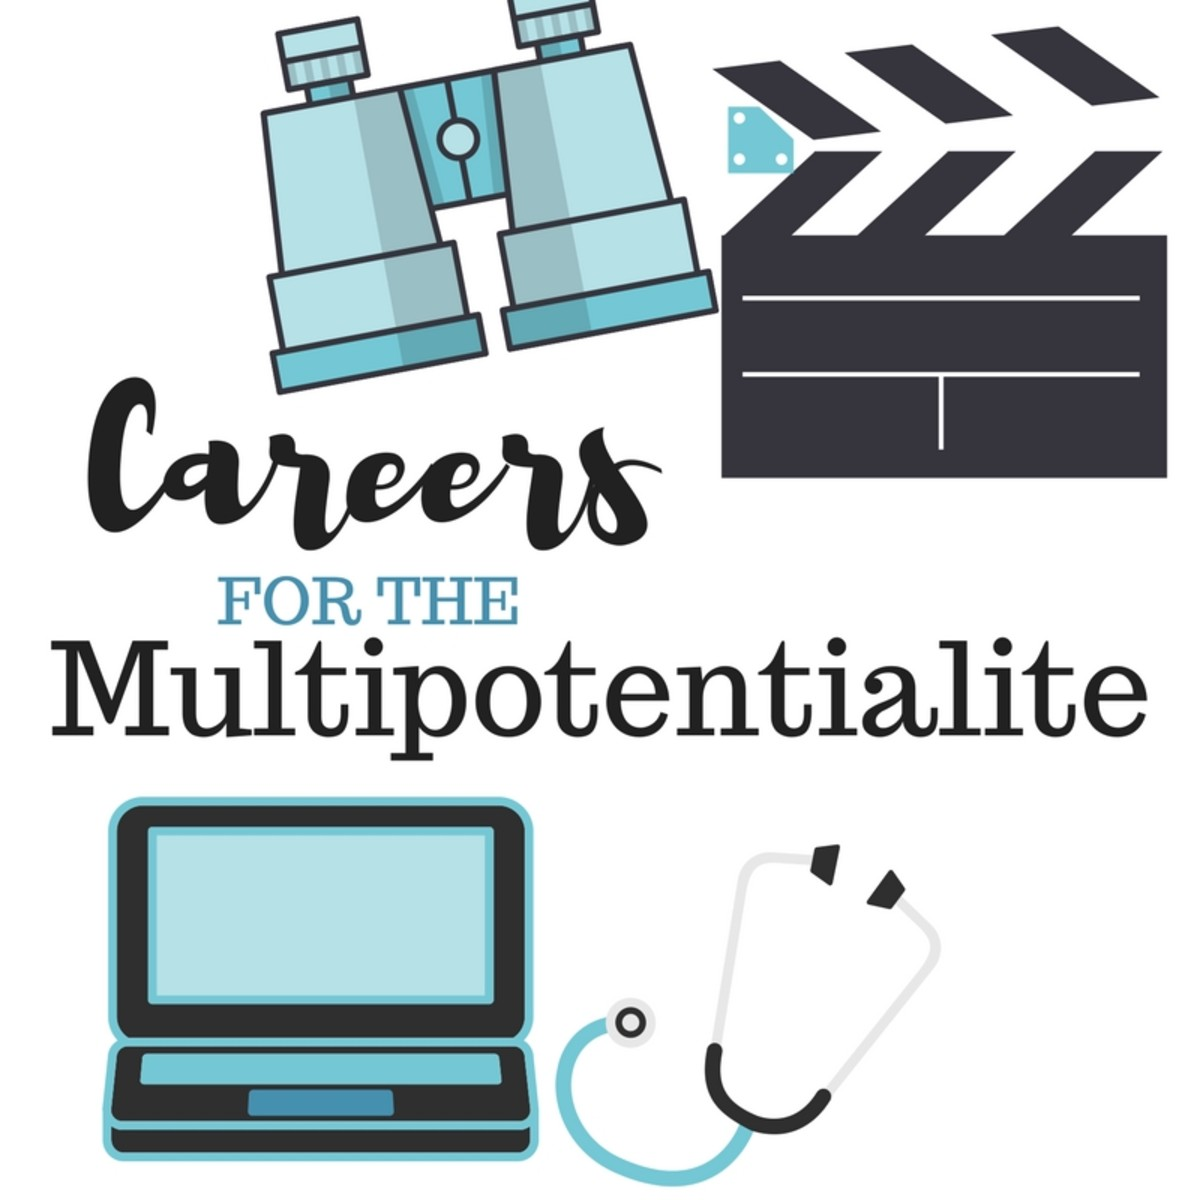 Careers as a Multipotentialite